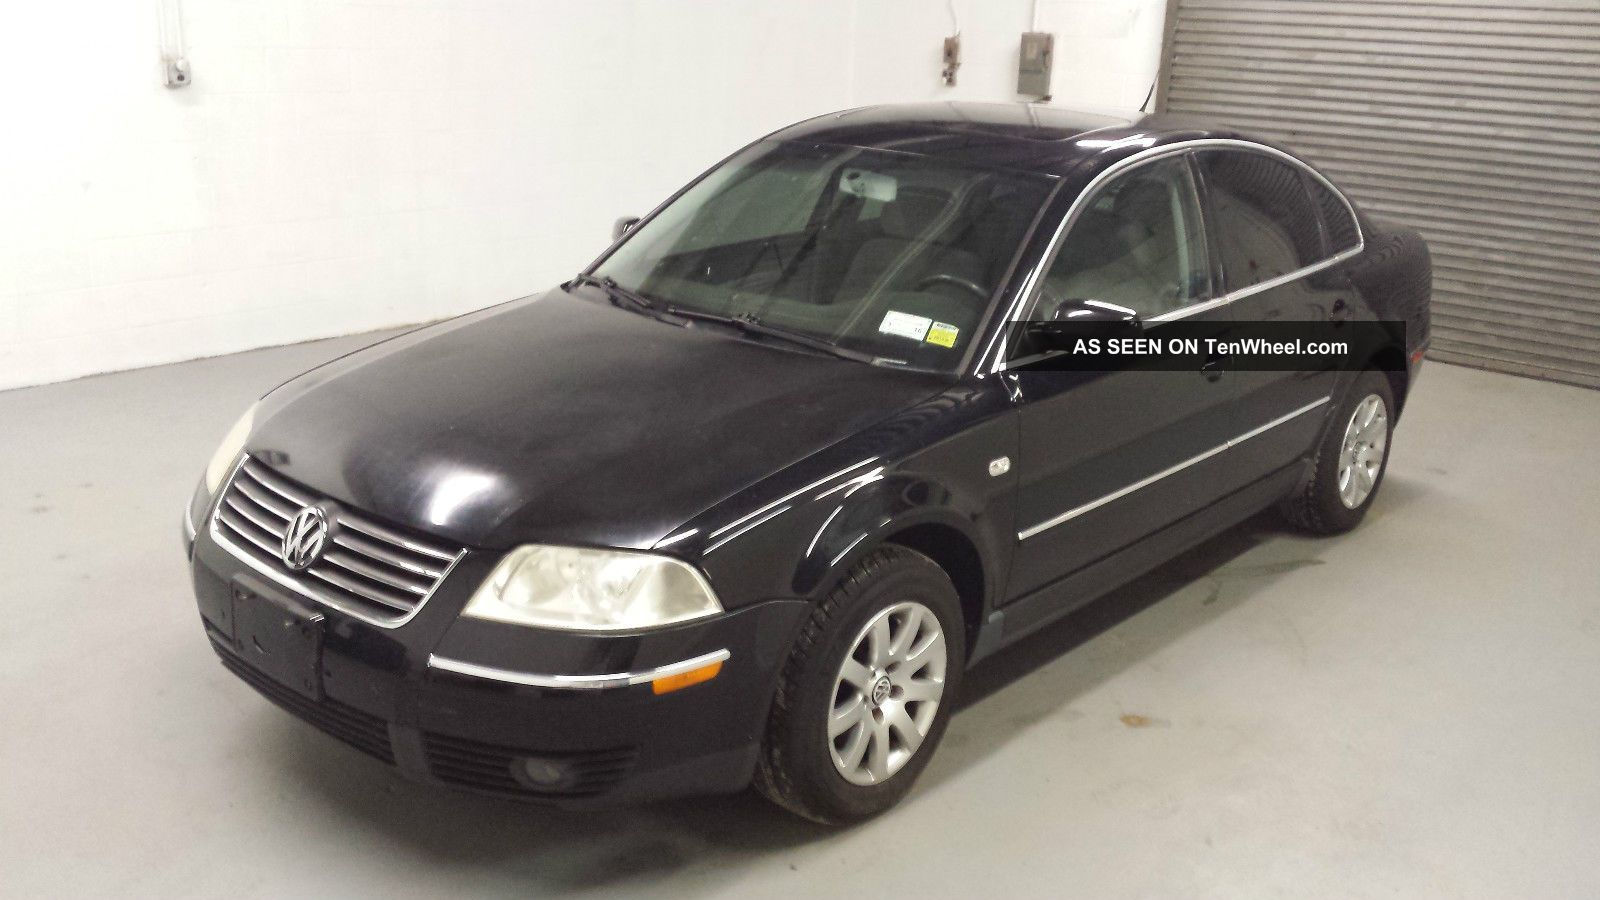 2002 Volkswagen Passat 4dsd,  113k,  4 Cyl,  Title Passat photo